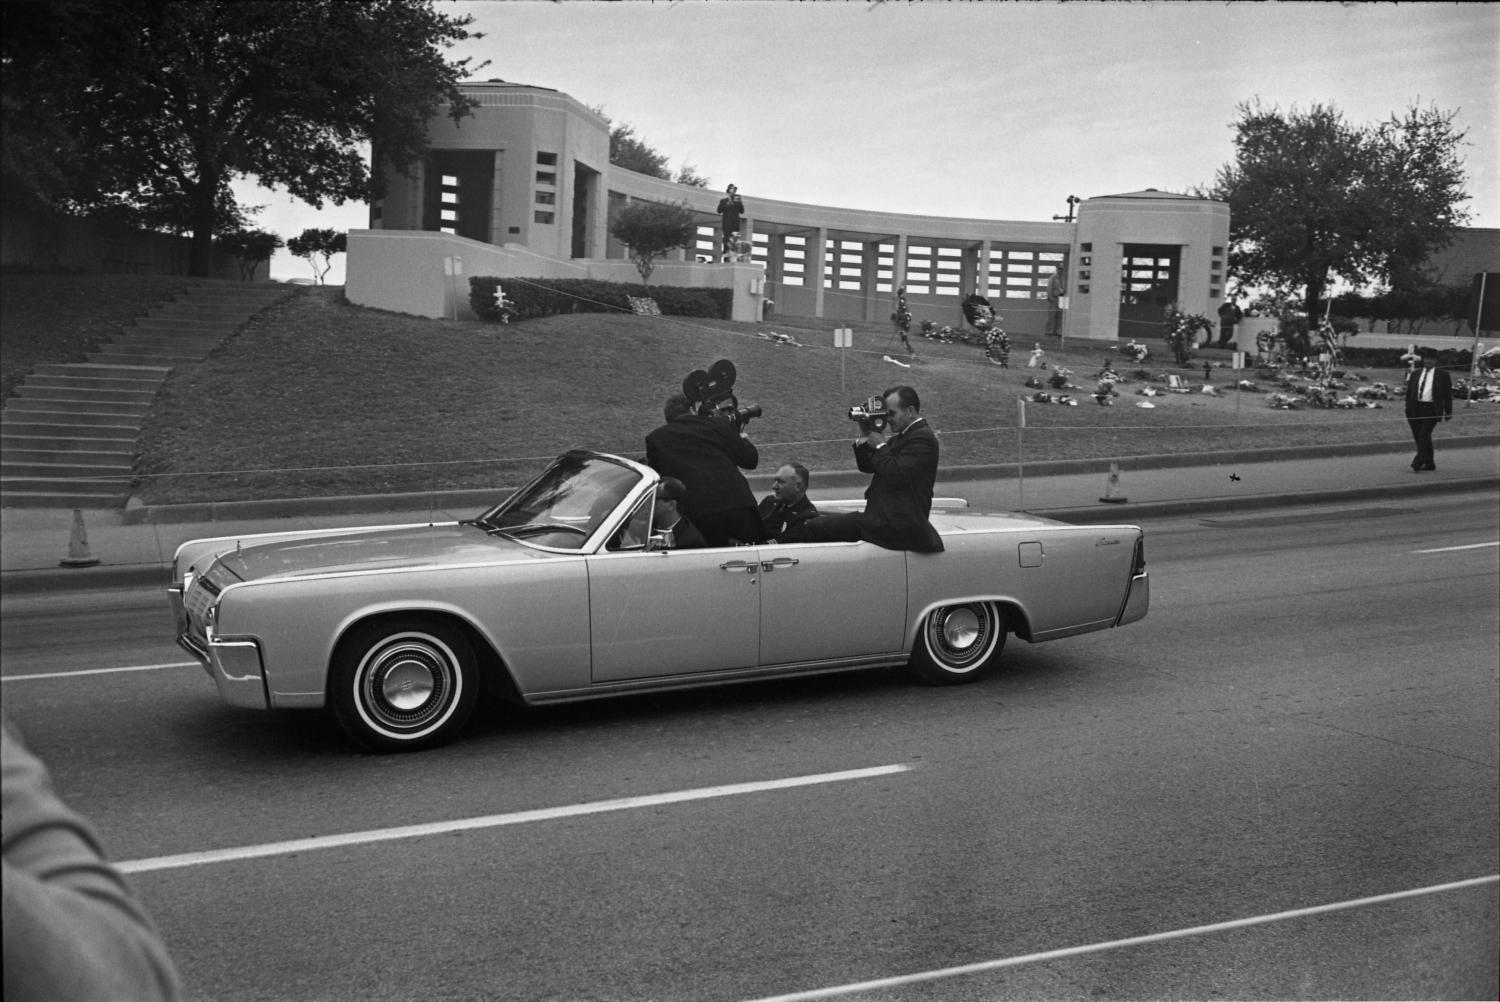 Convertible With Secret Service Agents Reenacting The